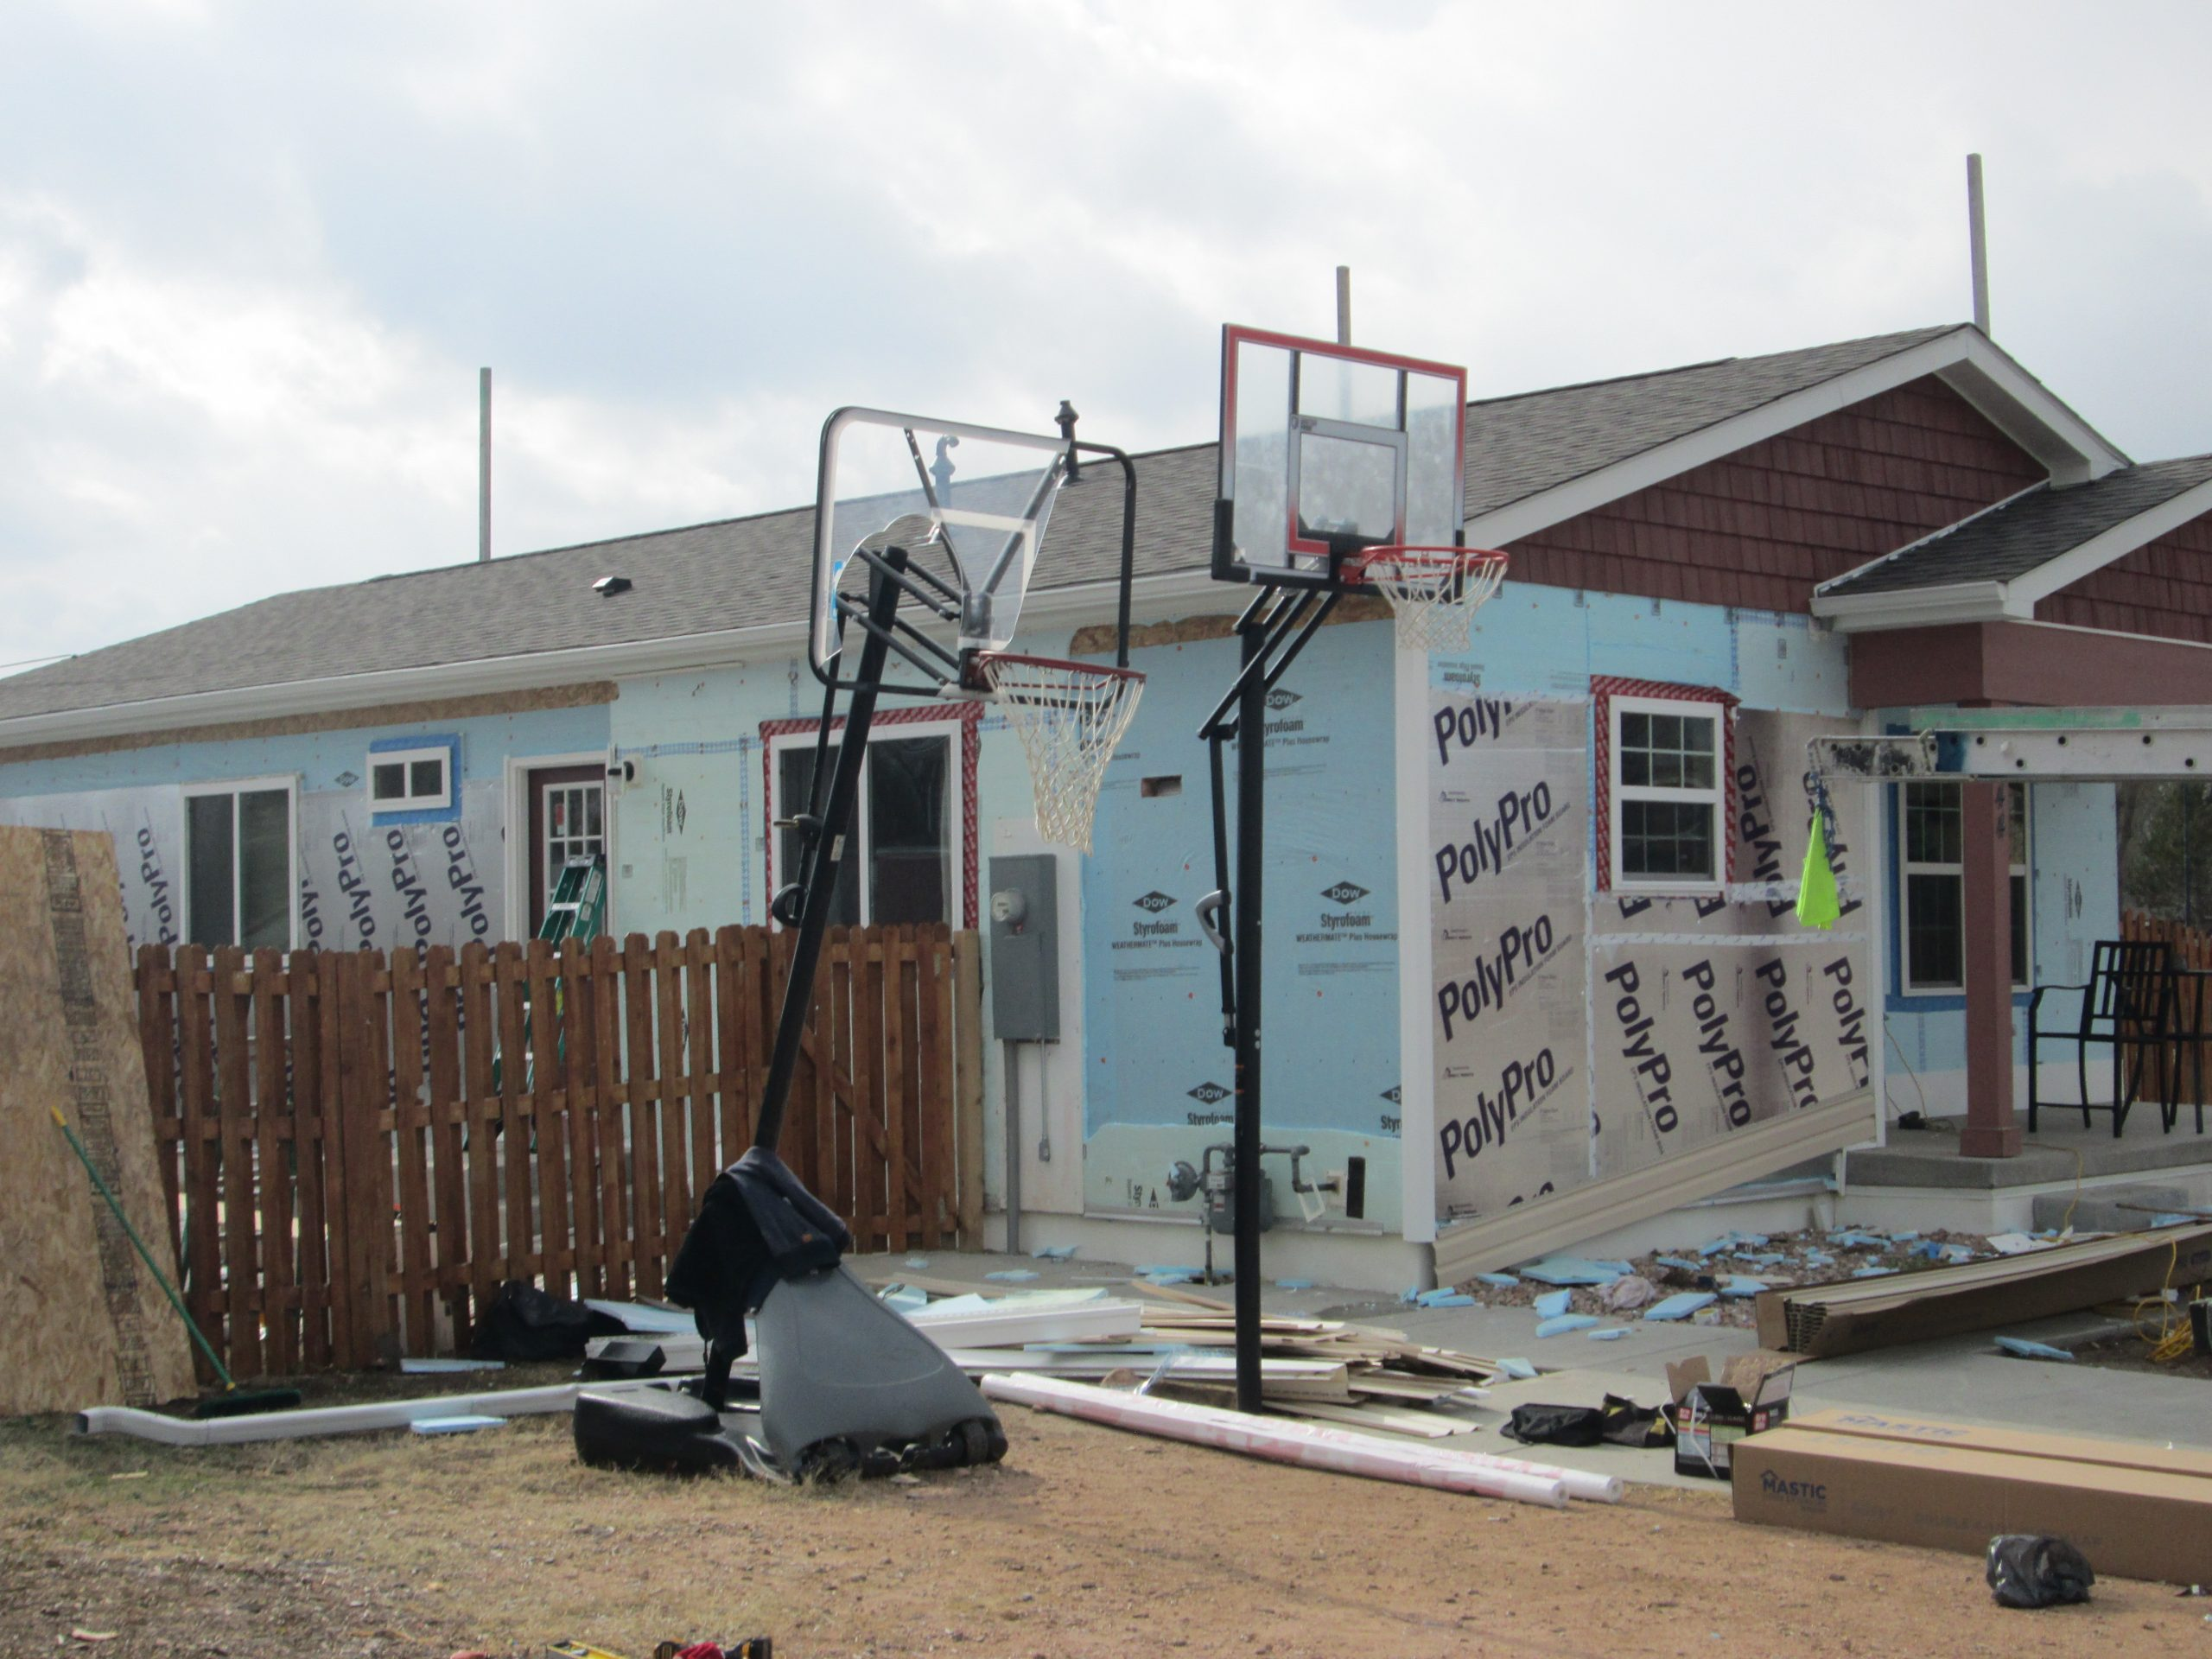 Habitat in El Paso County also has a repair program to assist existing homeowners with various projects. This particular house received hail damage in 2018.